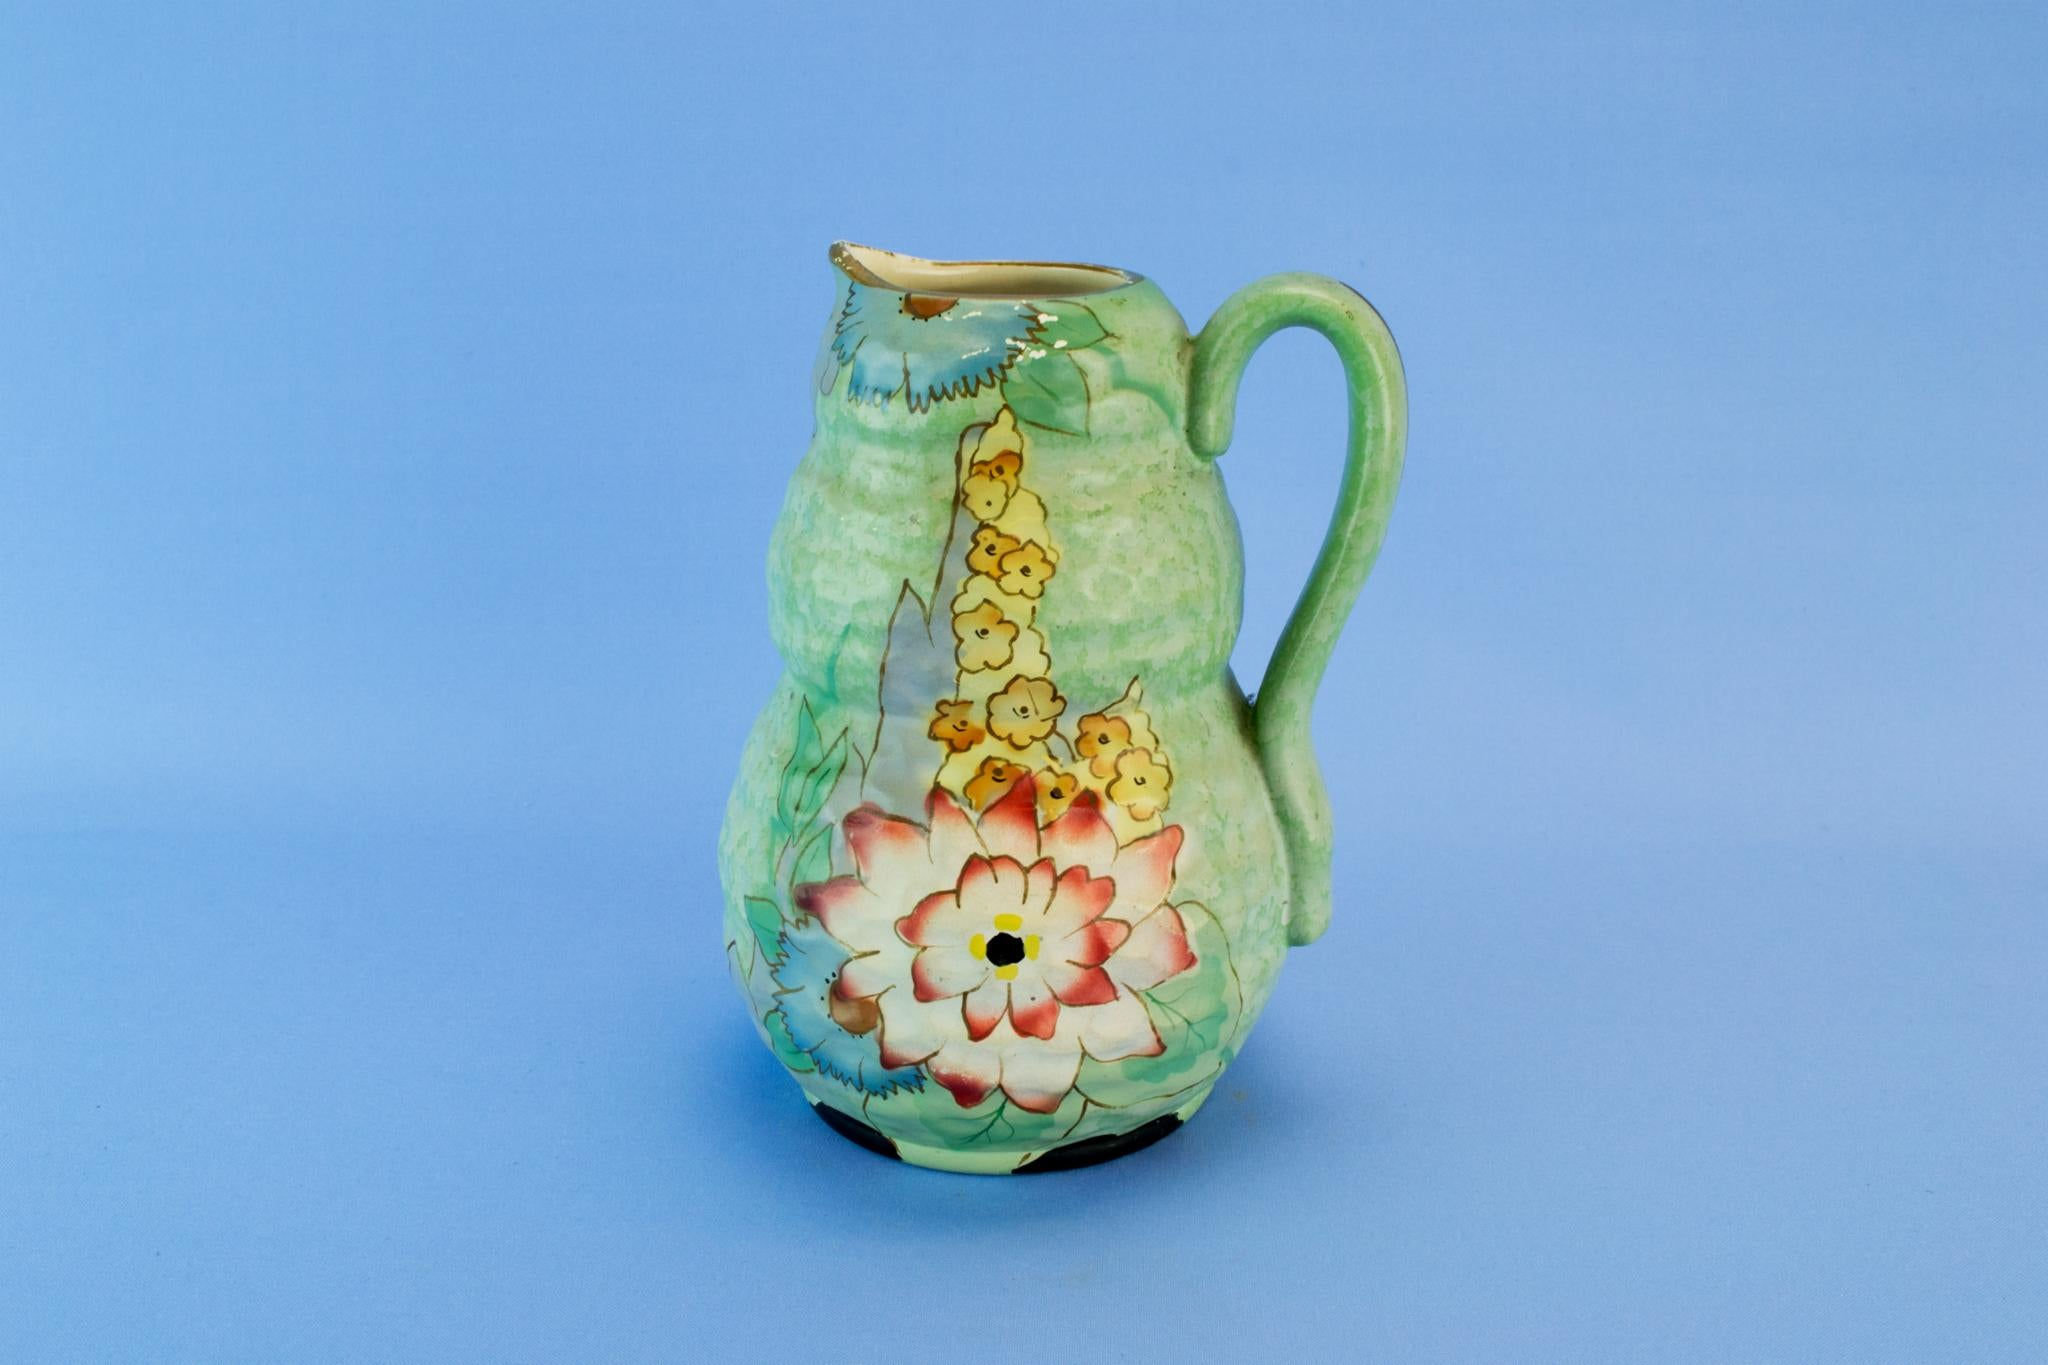 Green Art Deco water jug, English 1930s